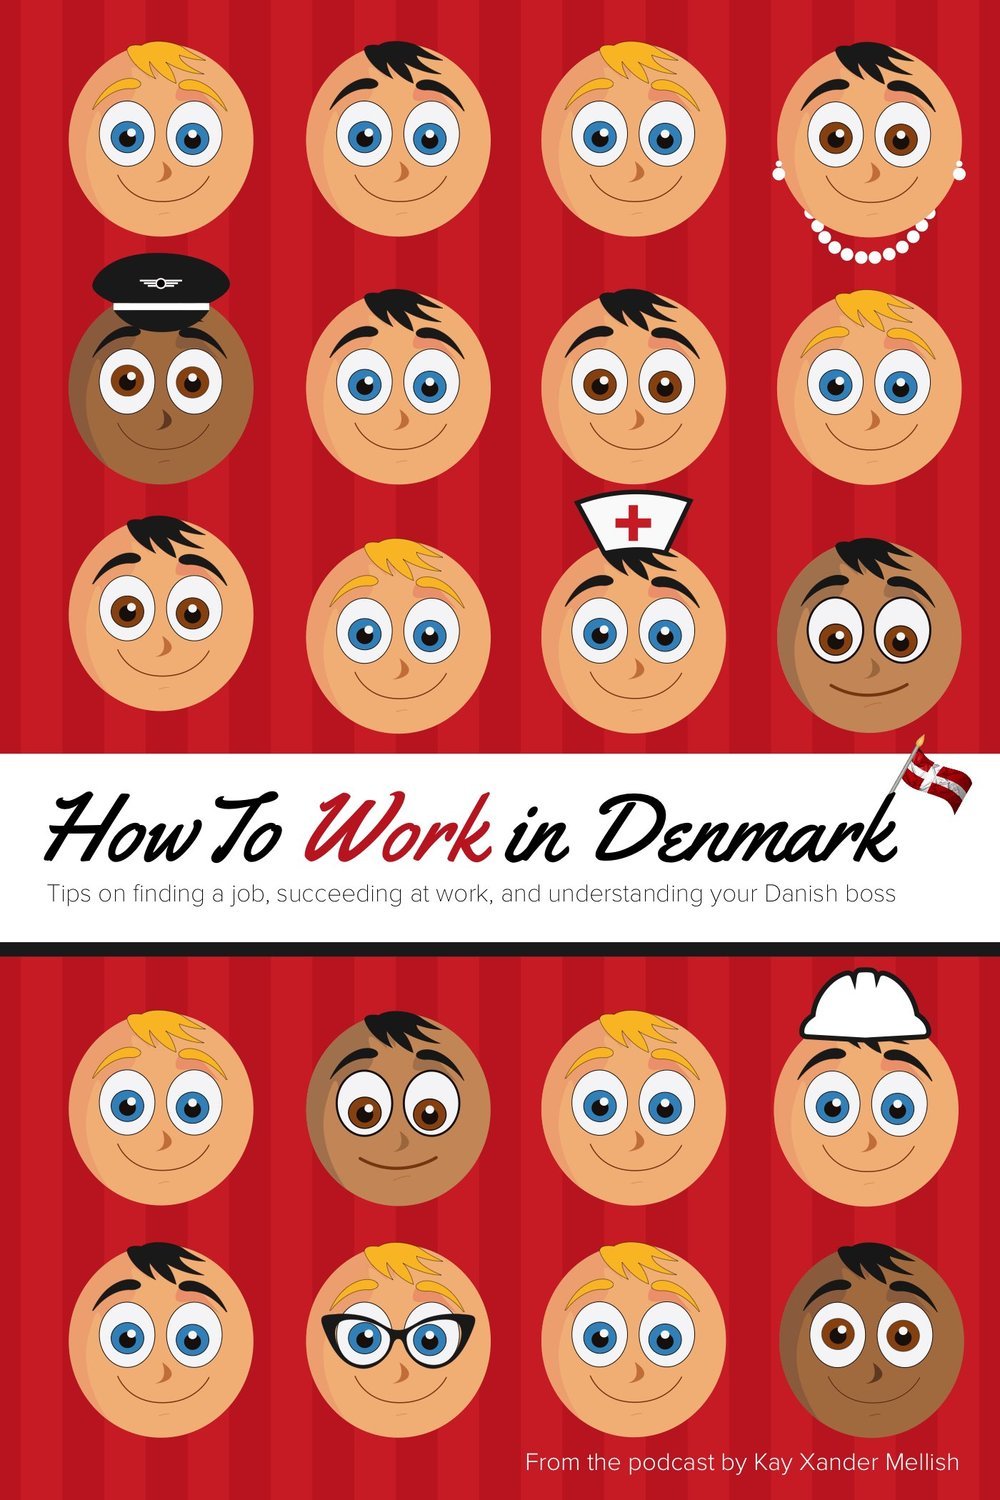 How-to-Work-in-Denmark-Generic.jpg